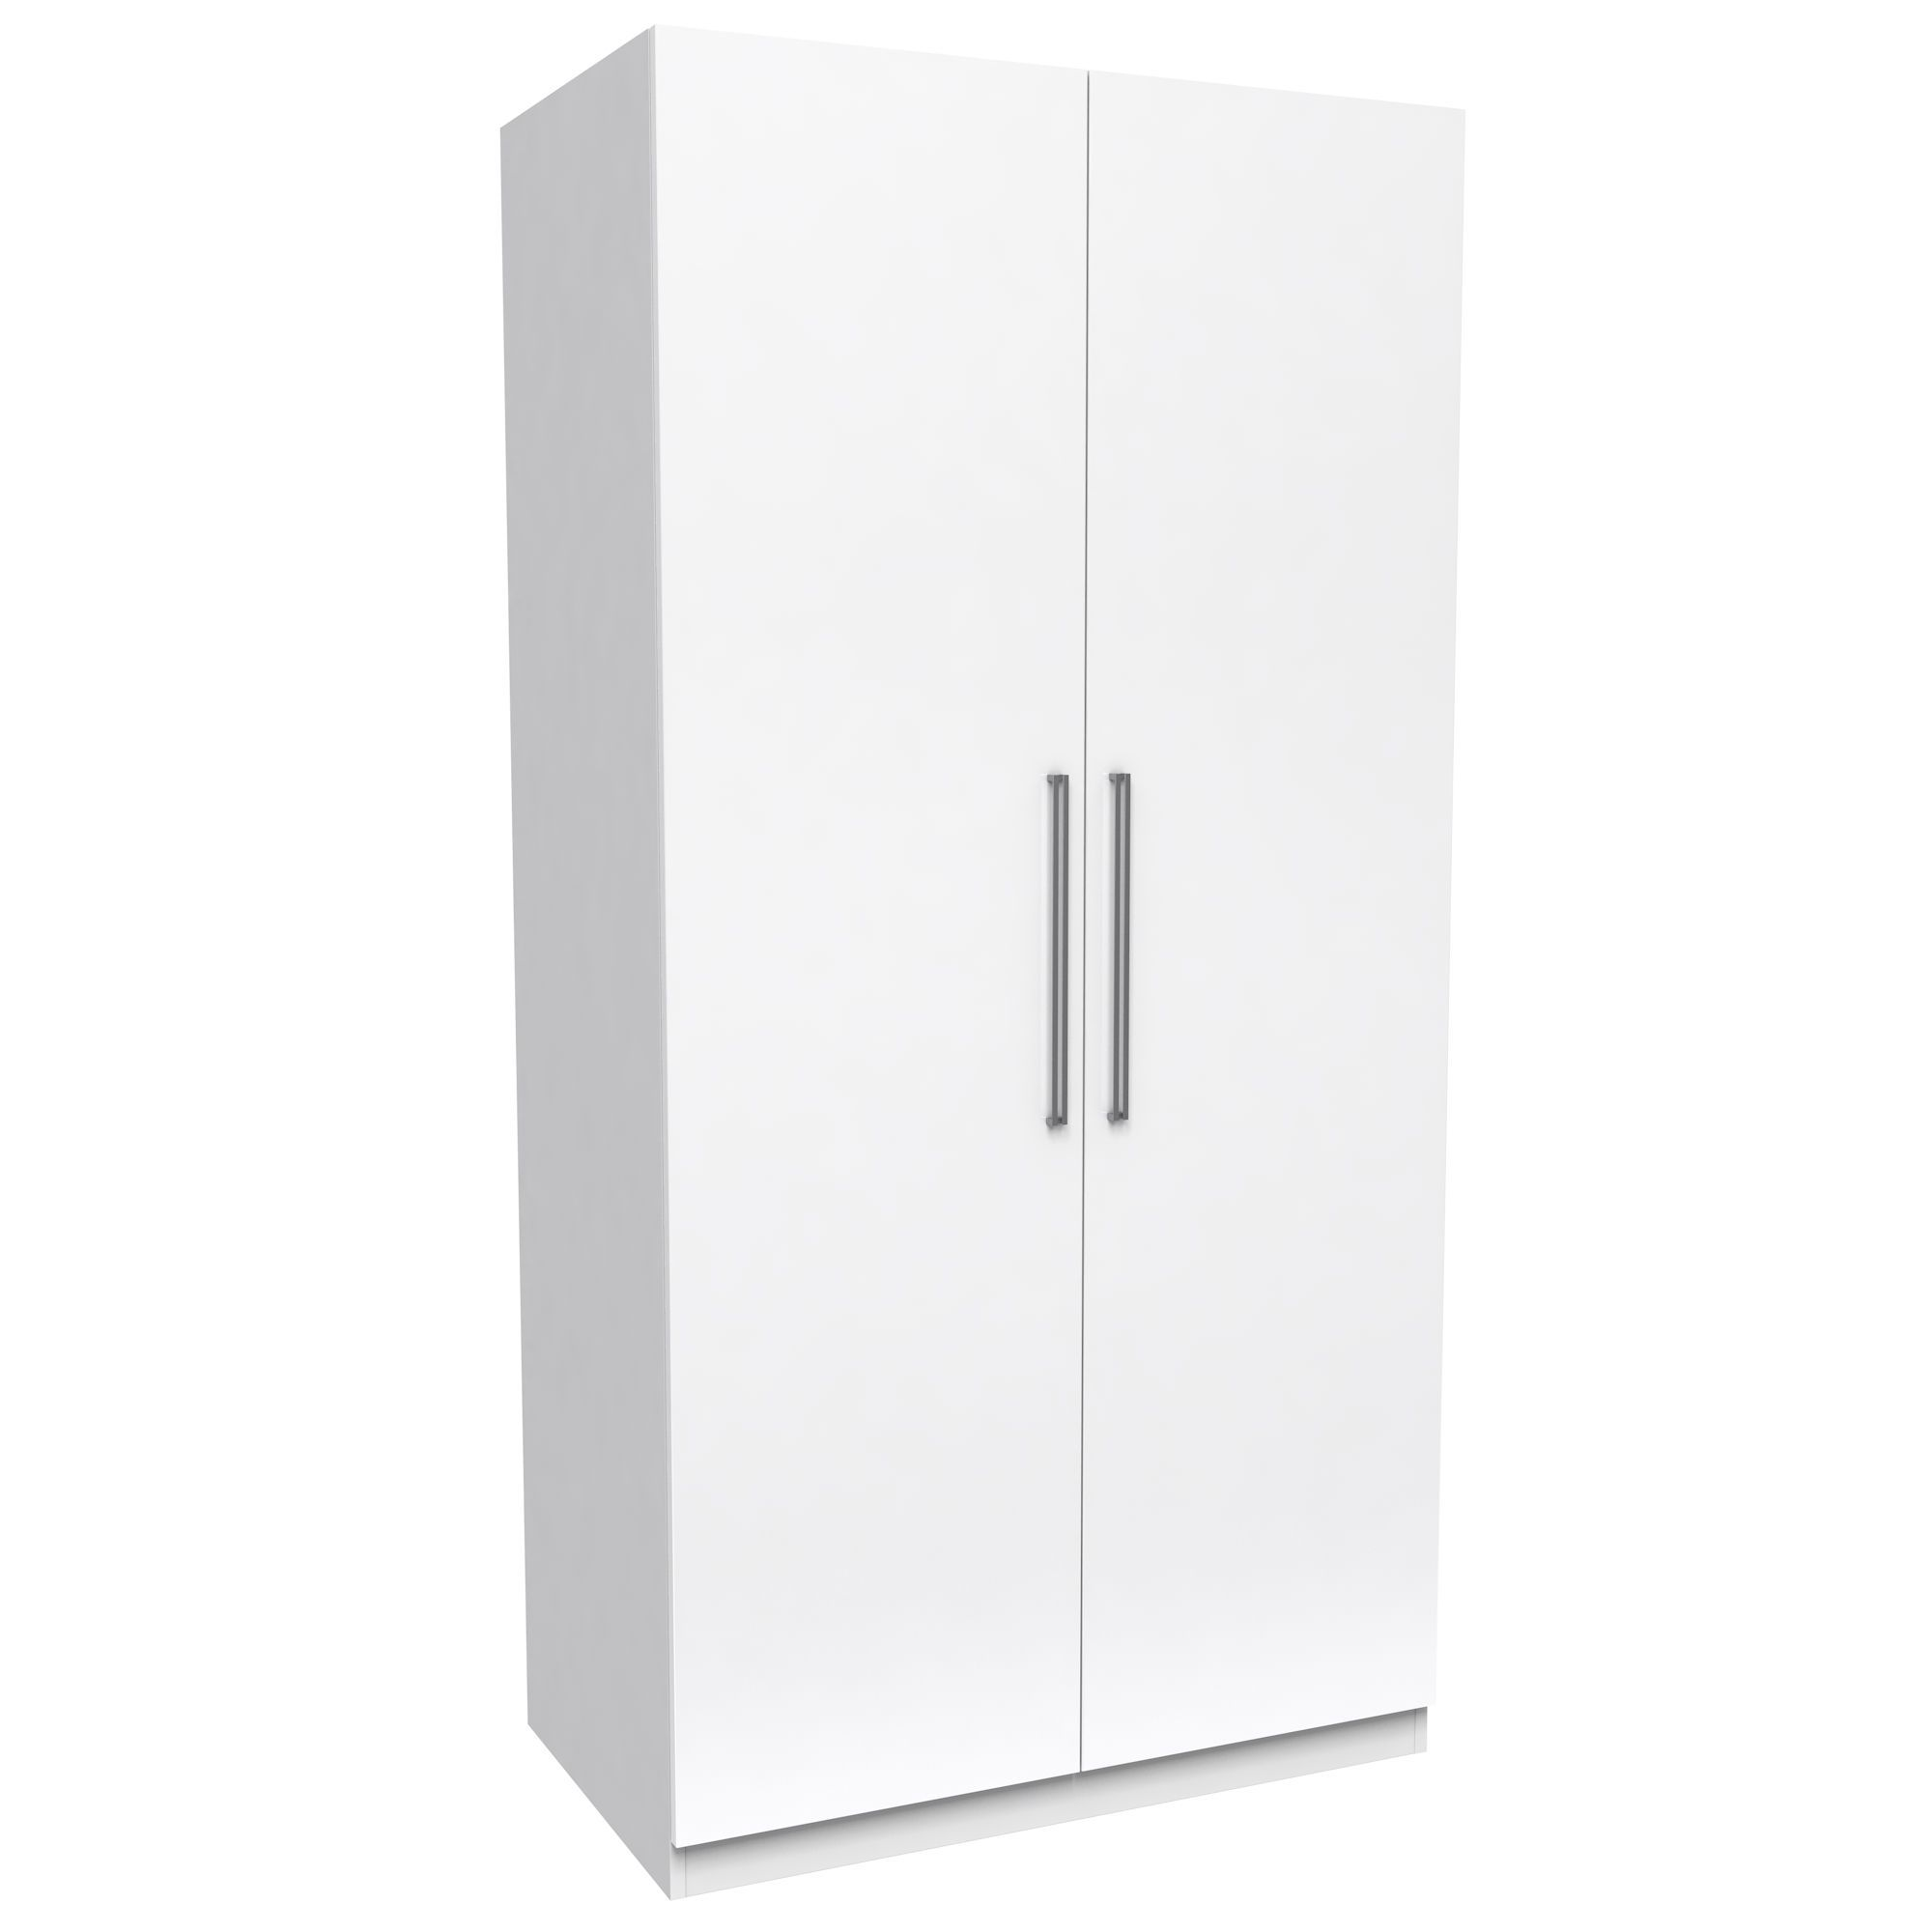 Darwin White 2 Door Wardrobe (H)2004Mm (W)998Mm